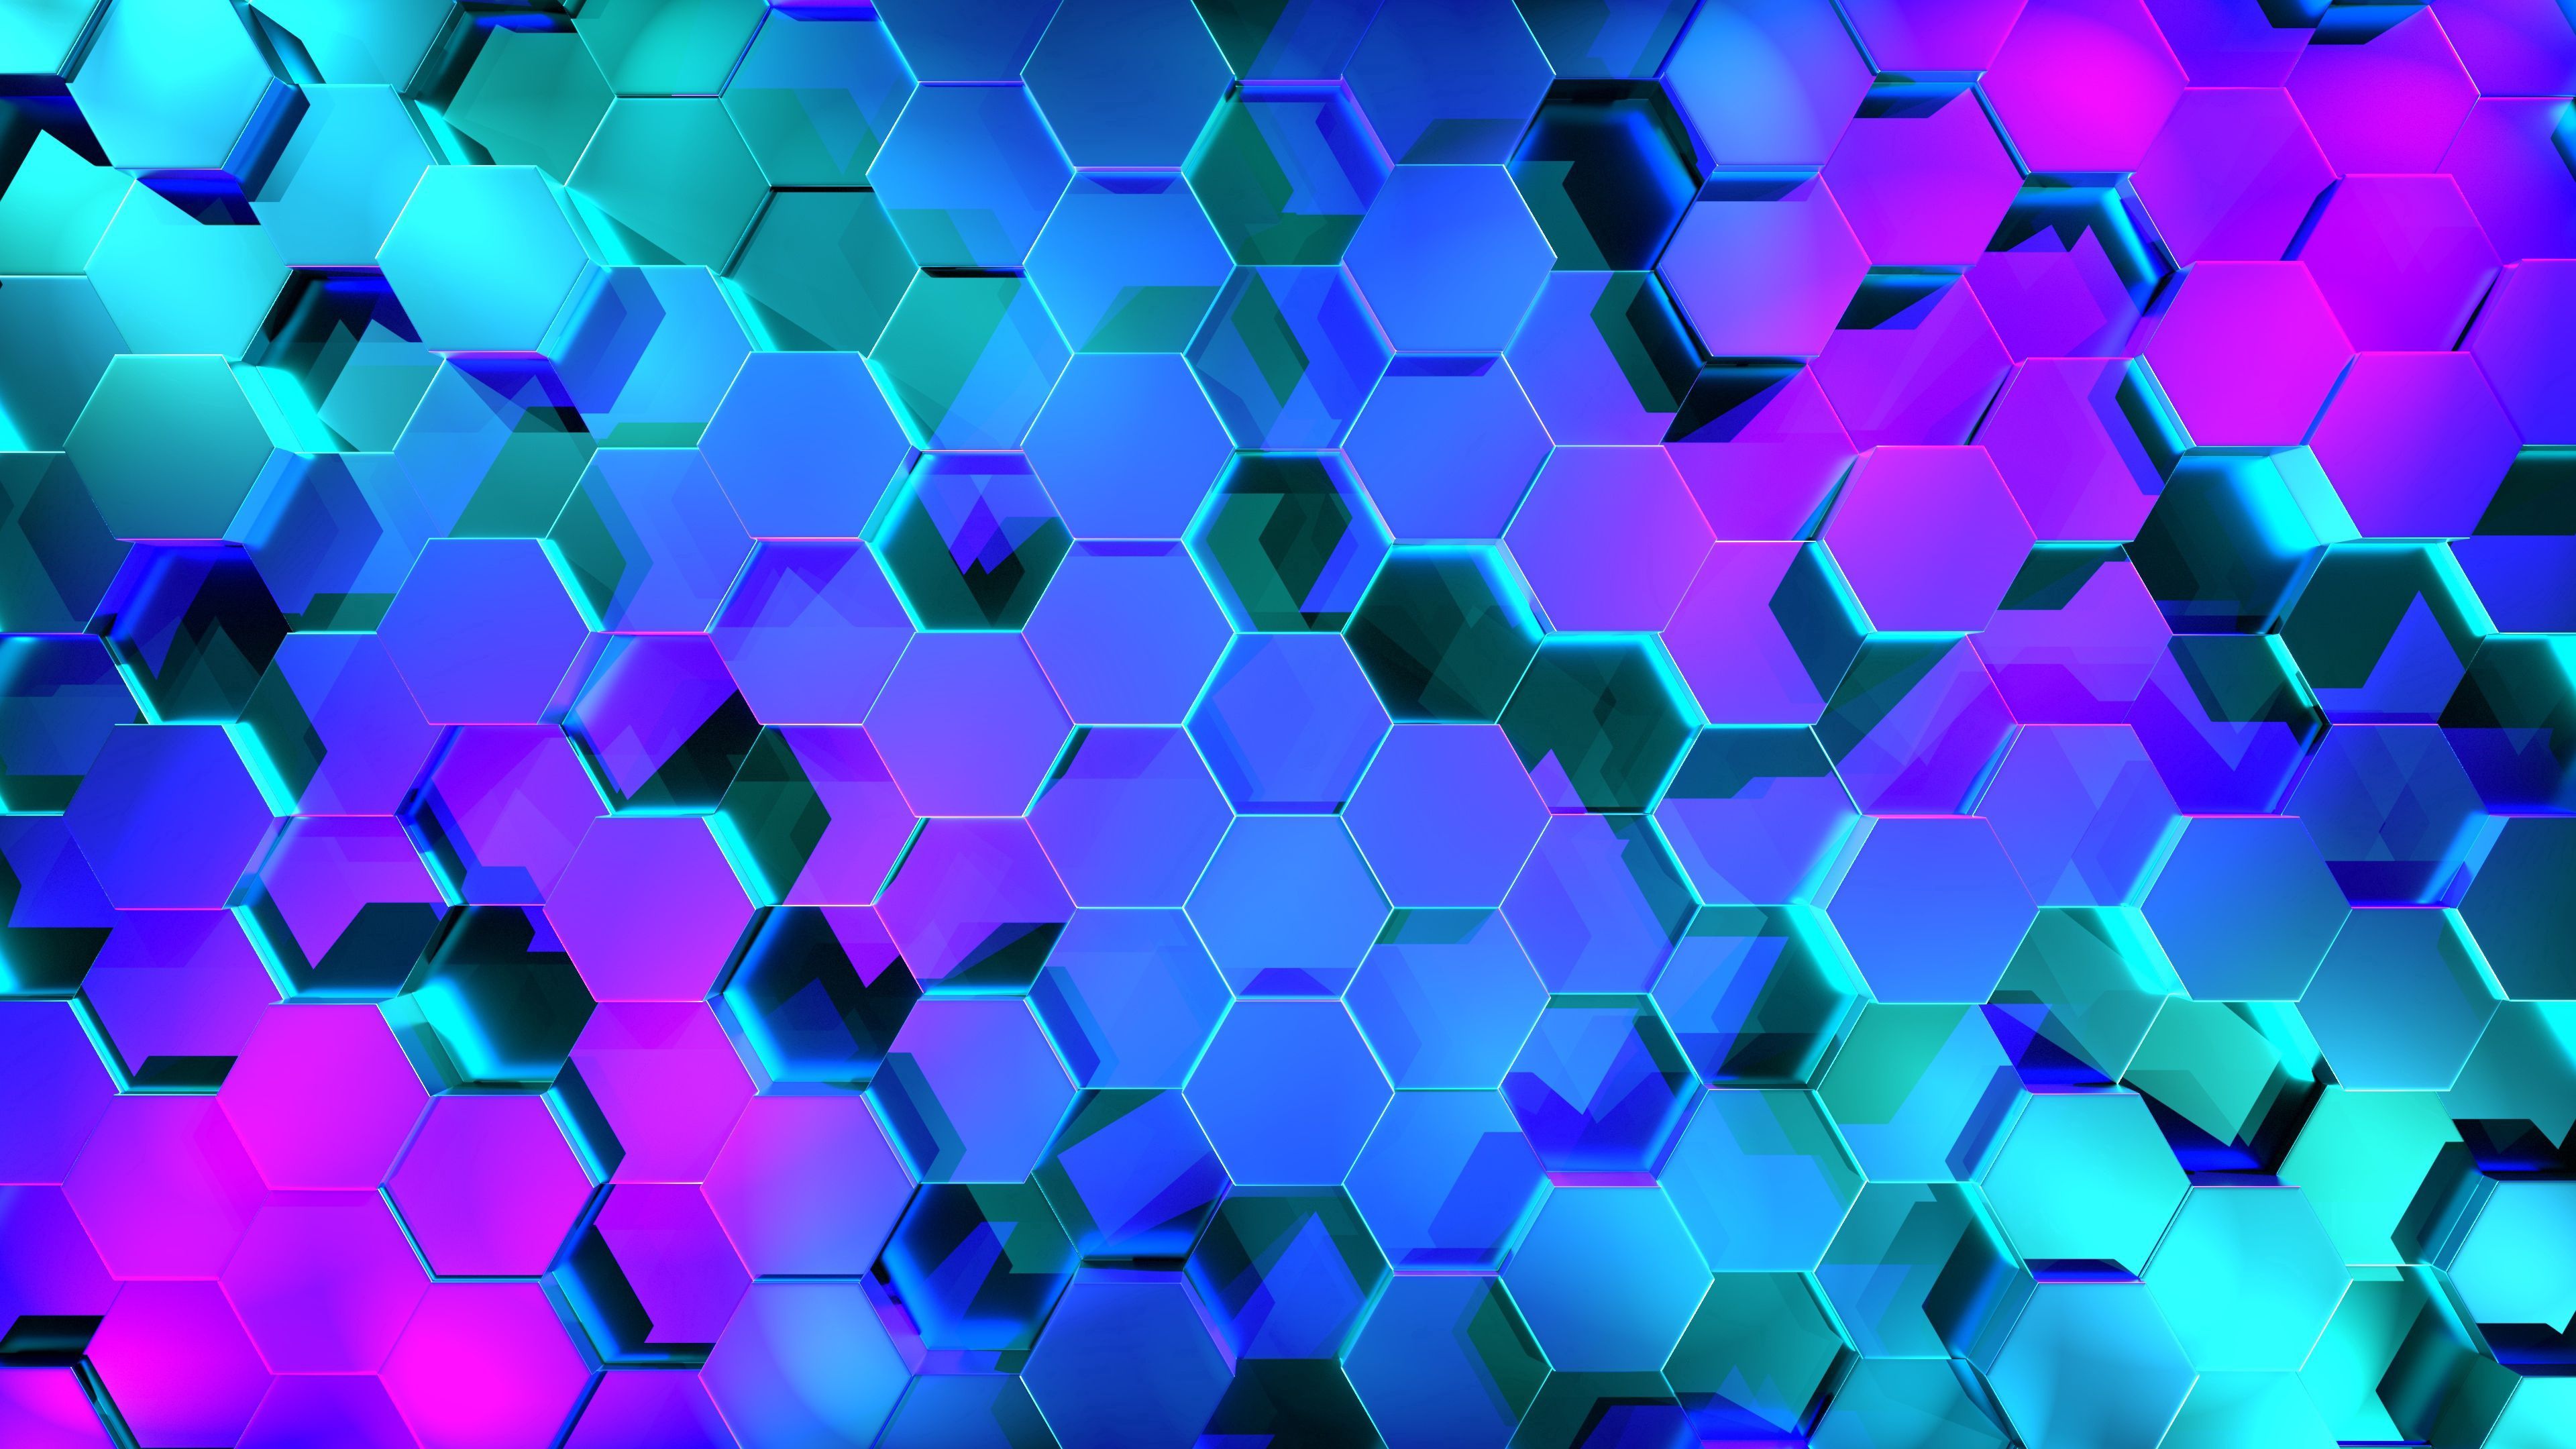 70824 download wallpaper 3D, Hexagons, Rendering, Shine, Light, Form screensavers and pictures for free